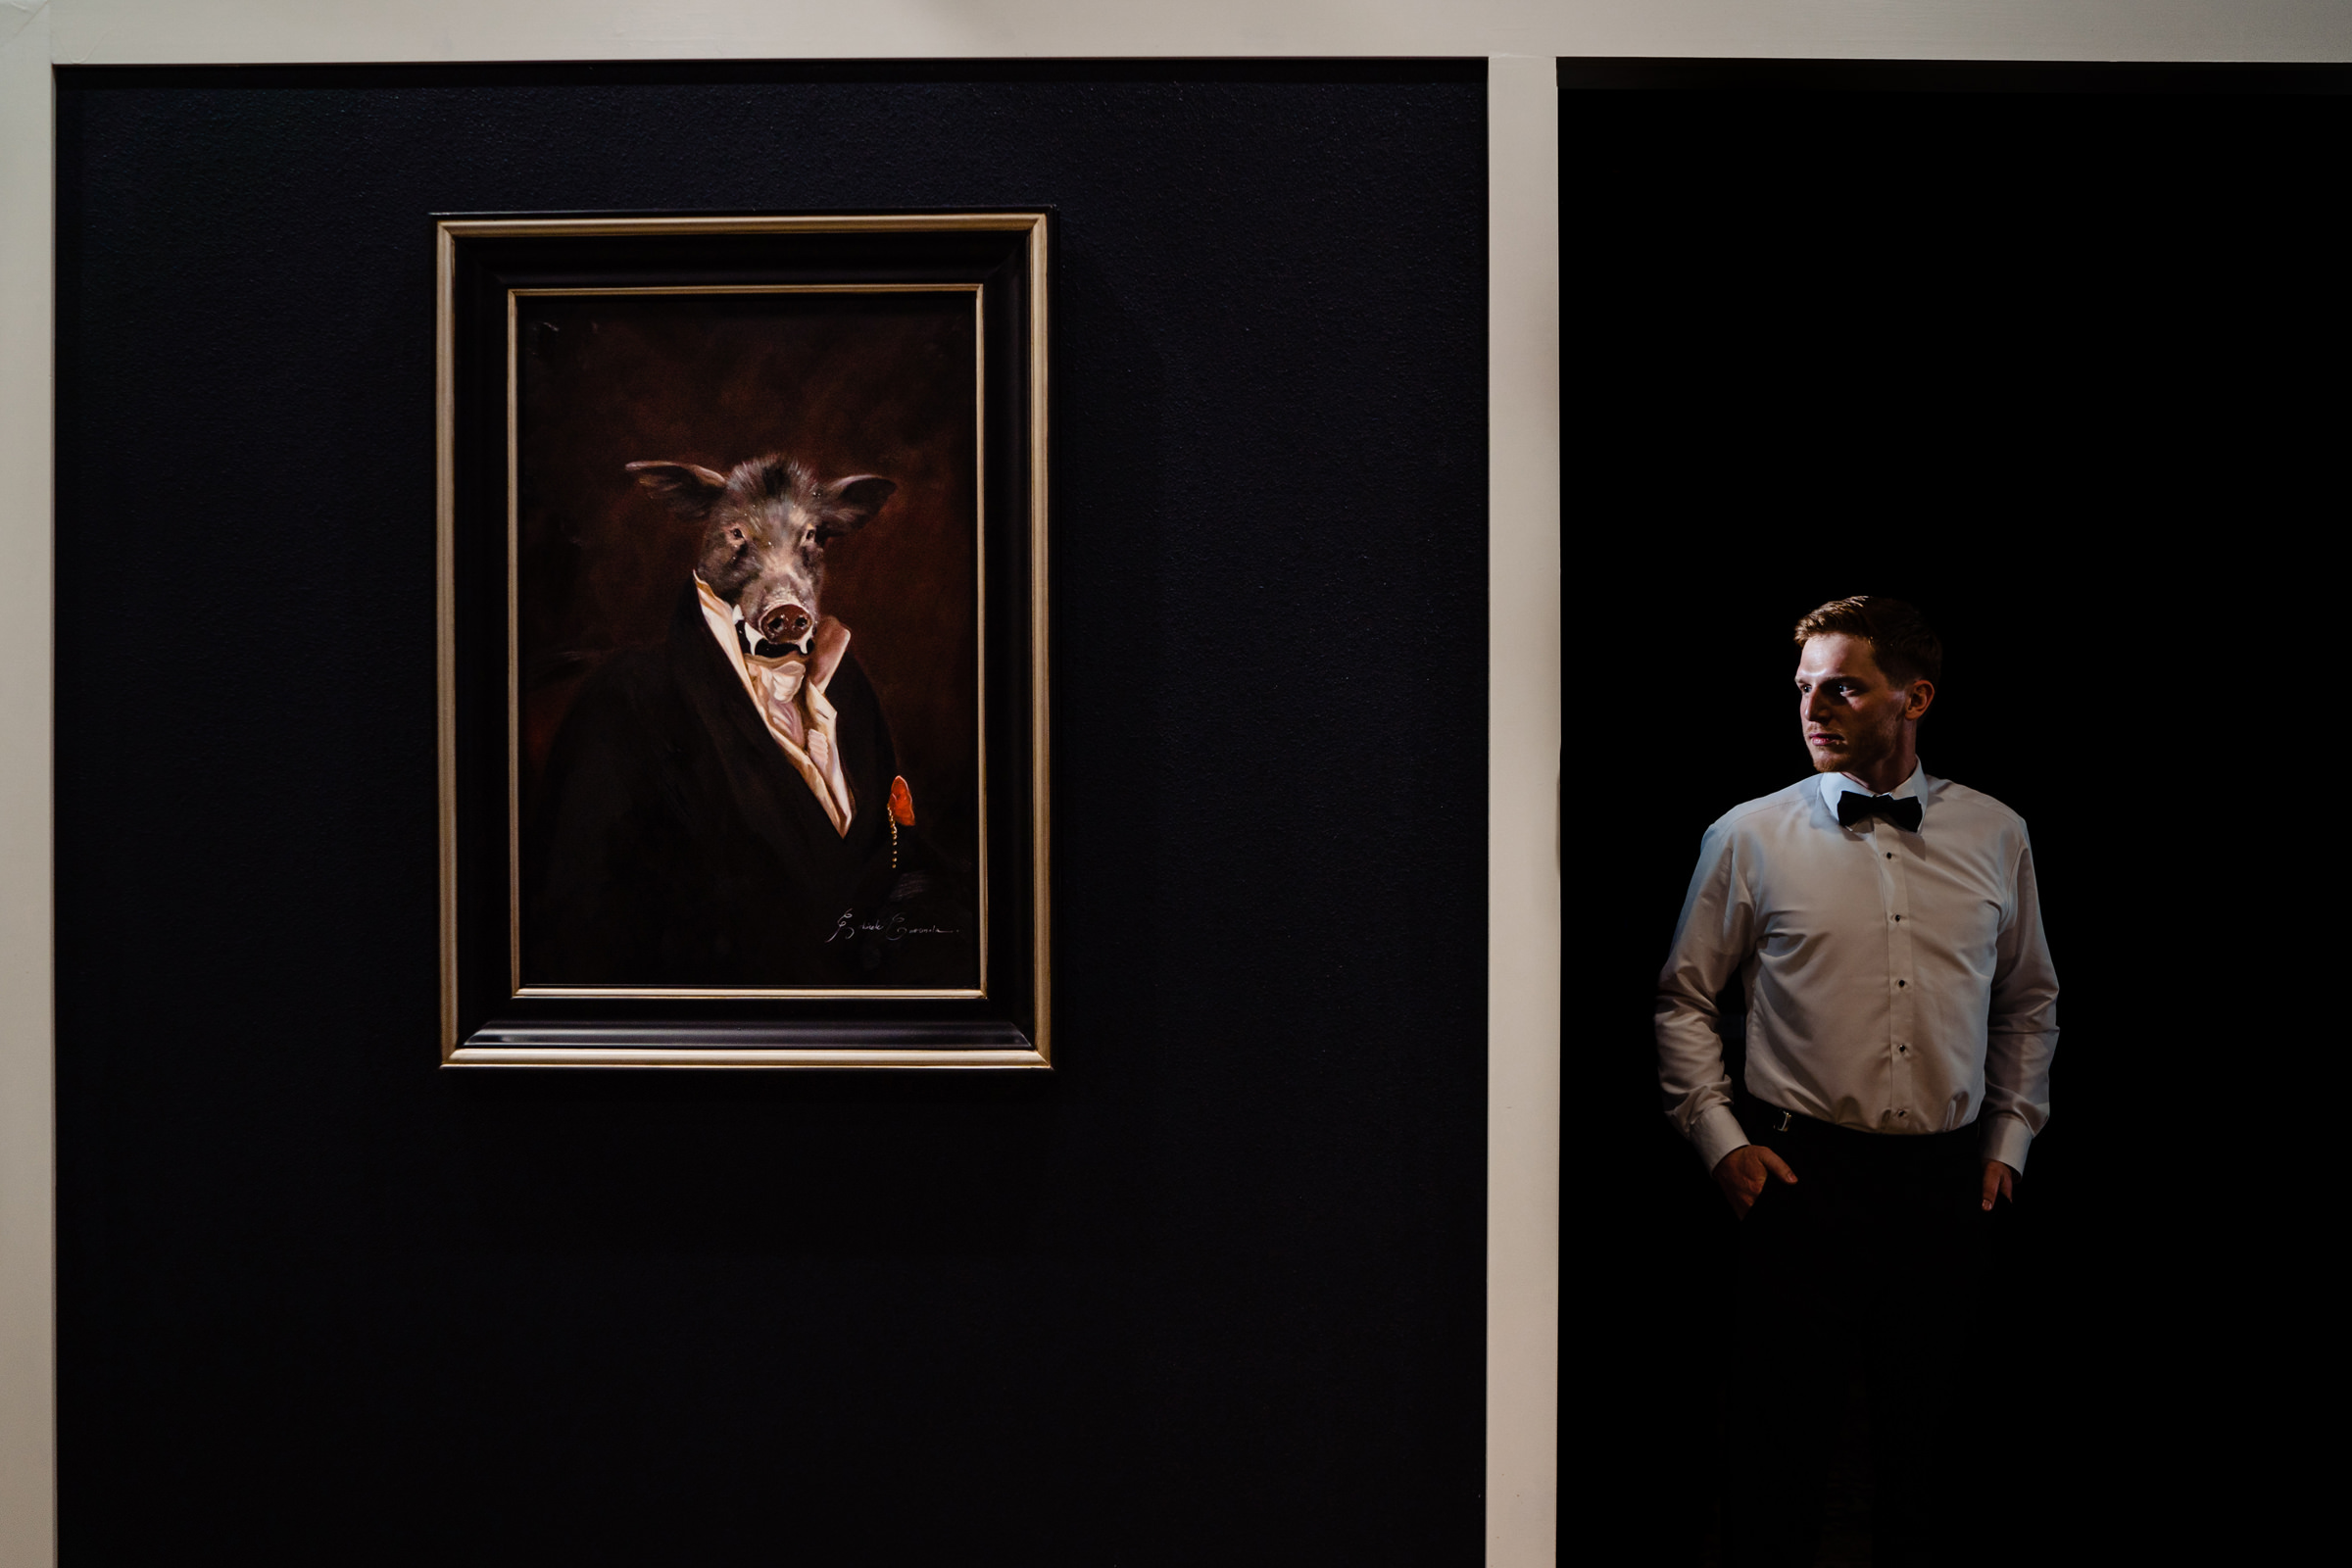 Groom portrait with hanging portrait of pig in a suit - photo by Vinson Images